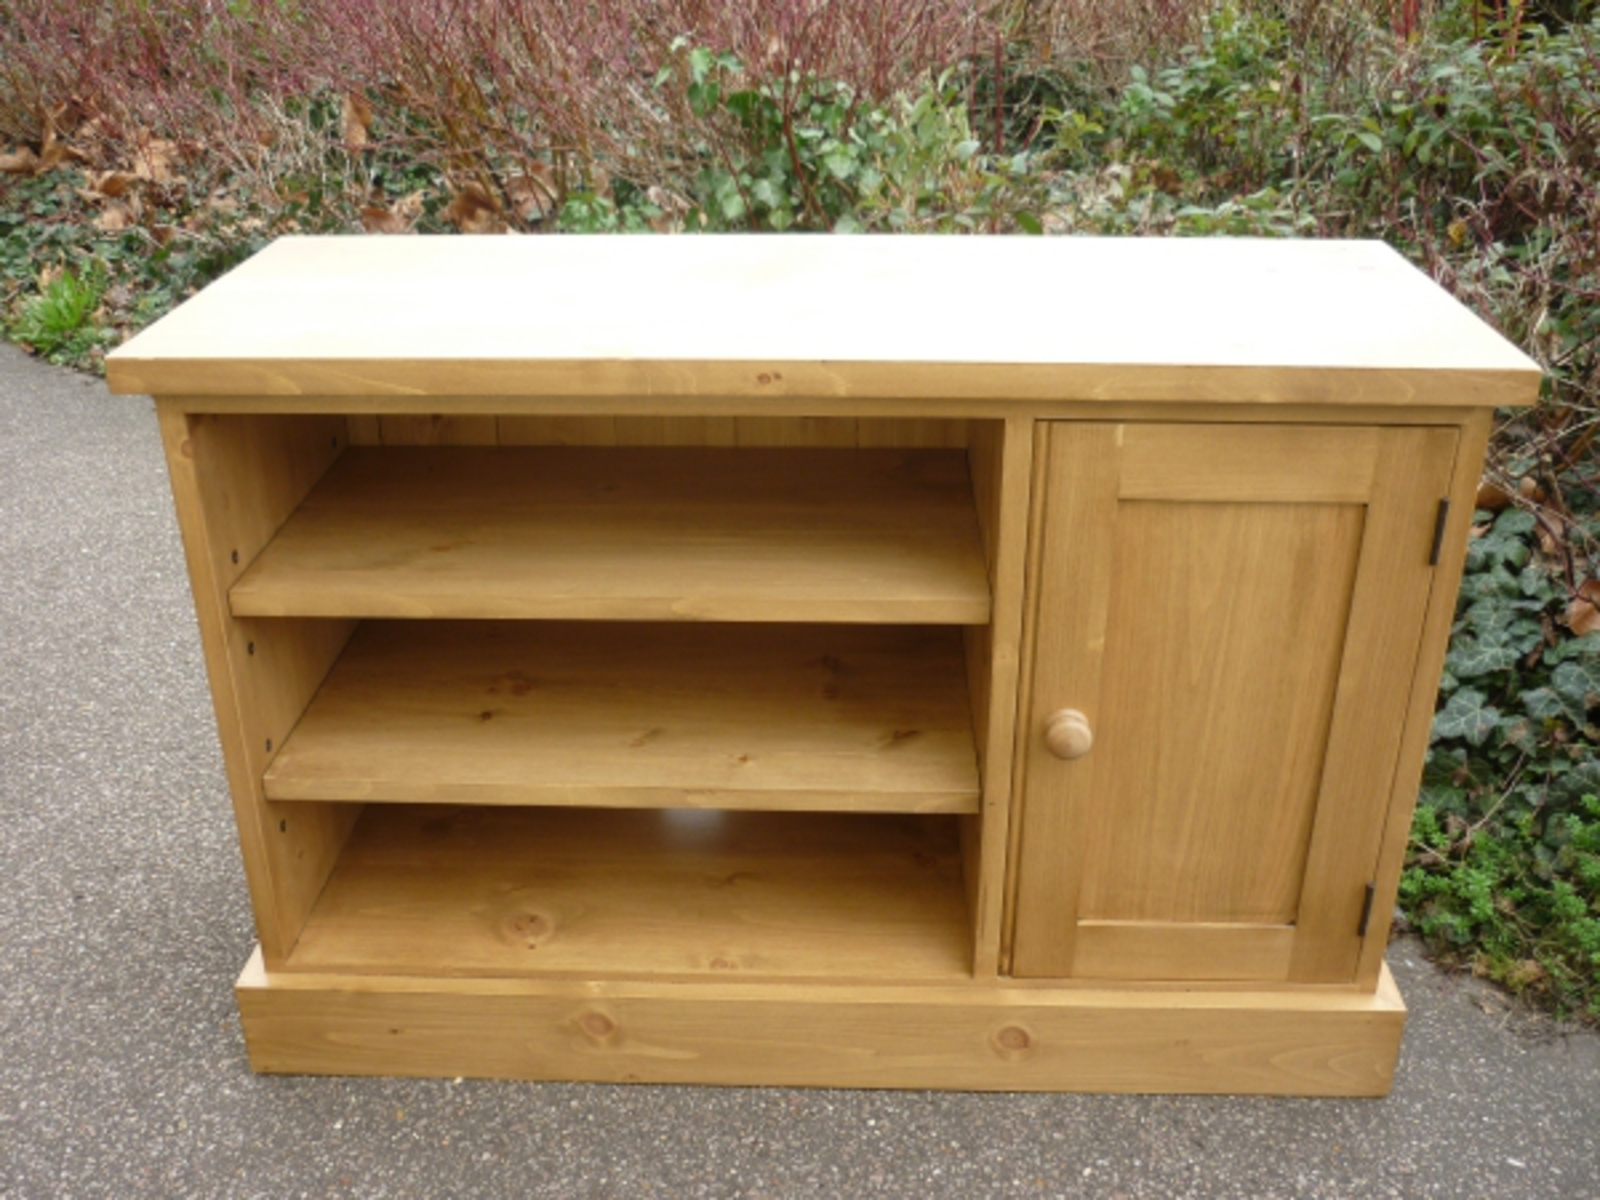 Tventertainment Stands Pine Oak Painted And Bespoke Furniture With Regard To Bespoke Tv Stands (View 14 of 15)